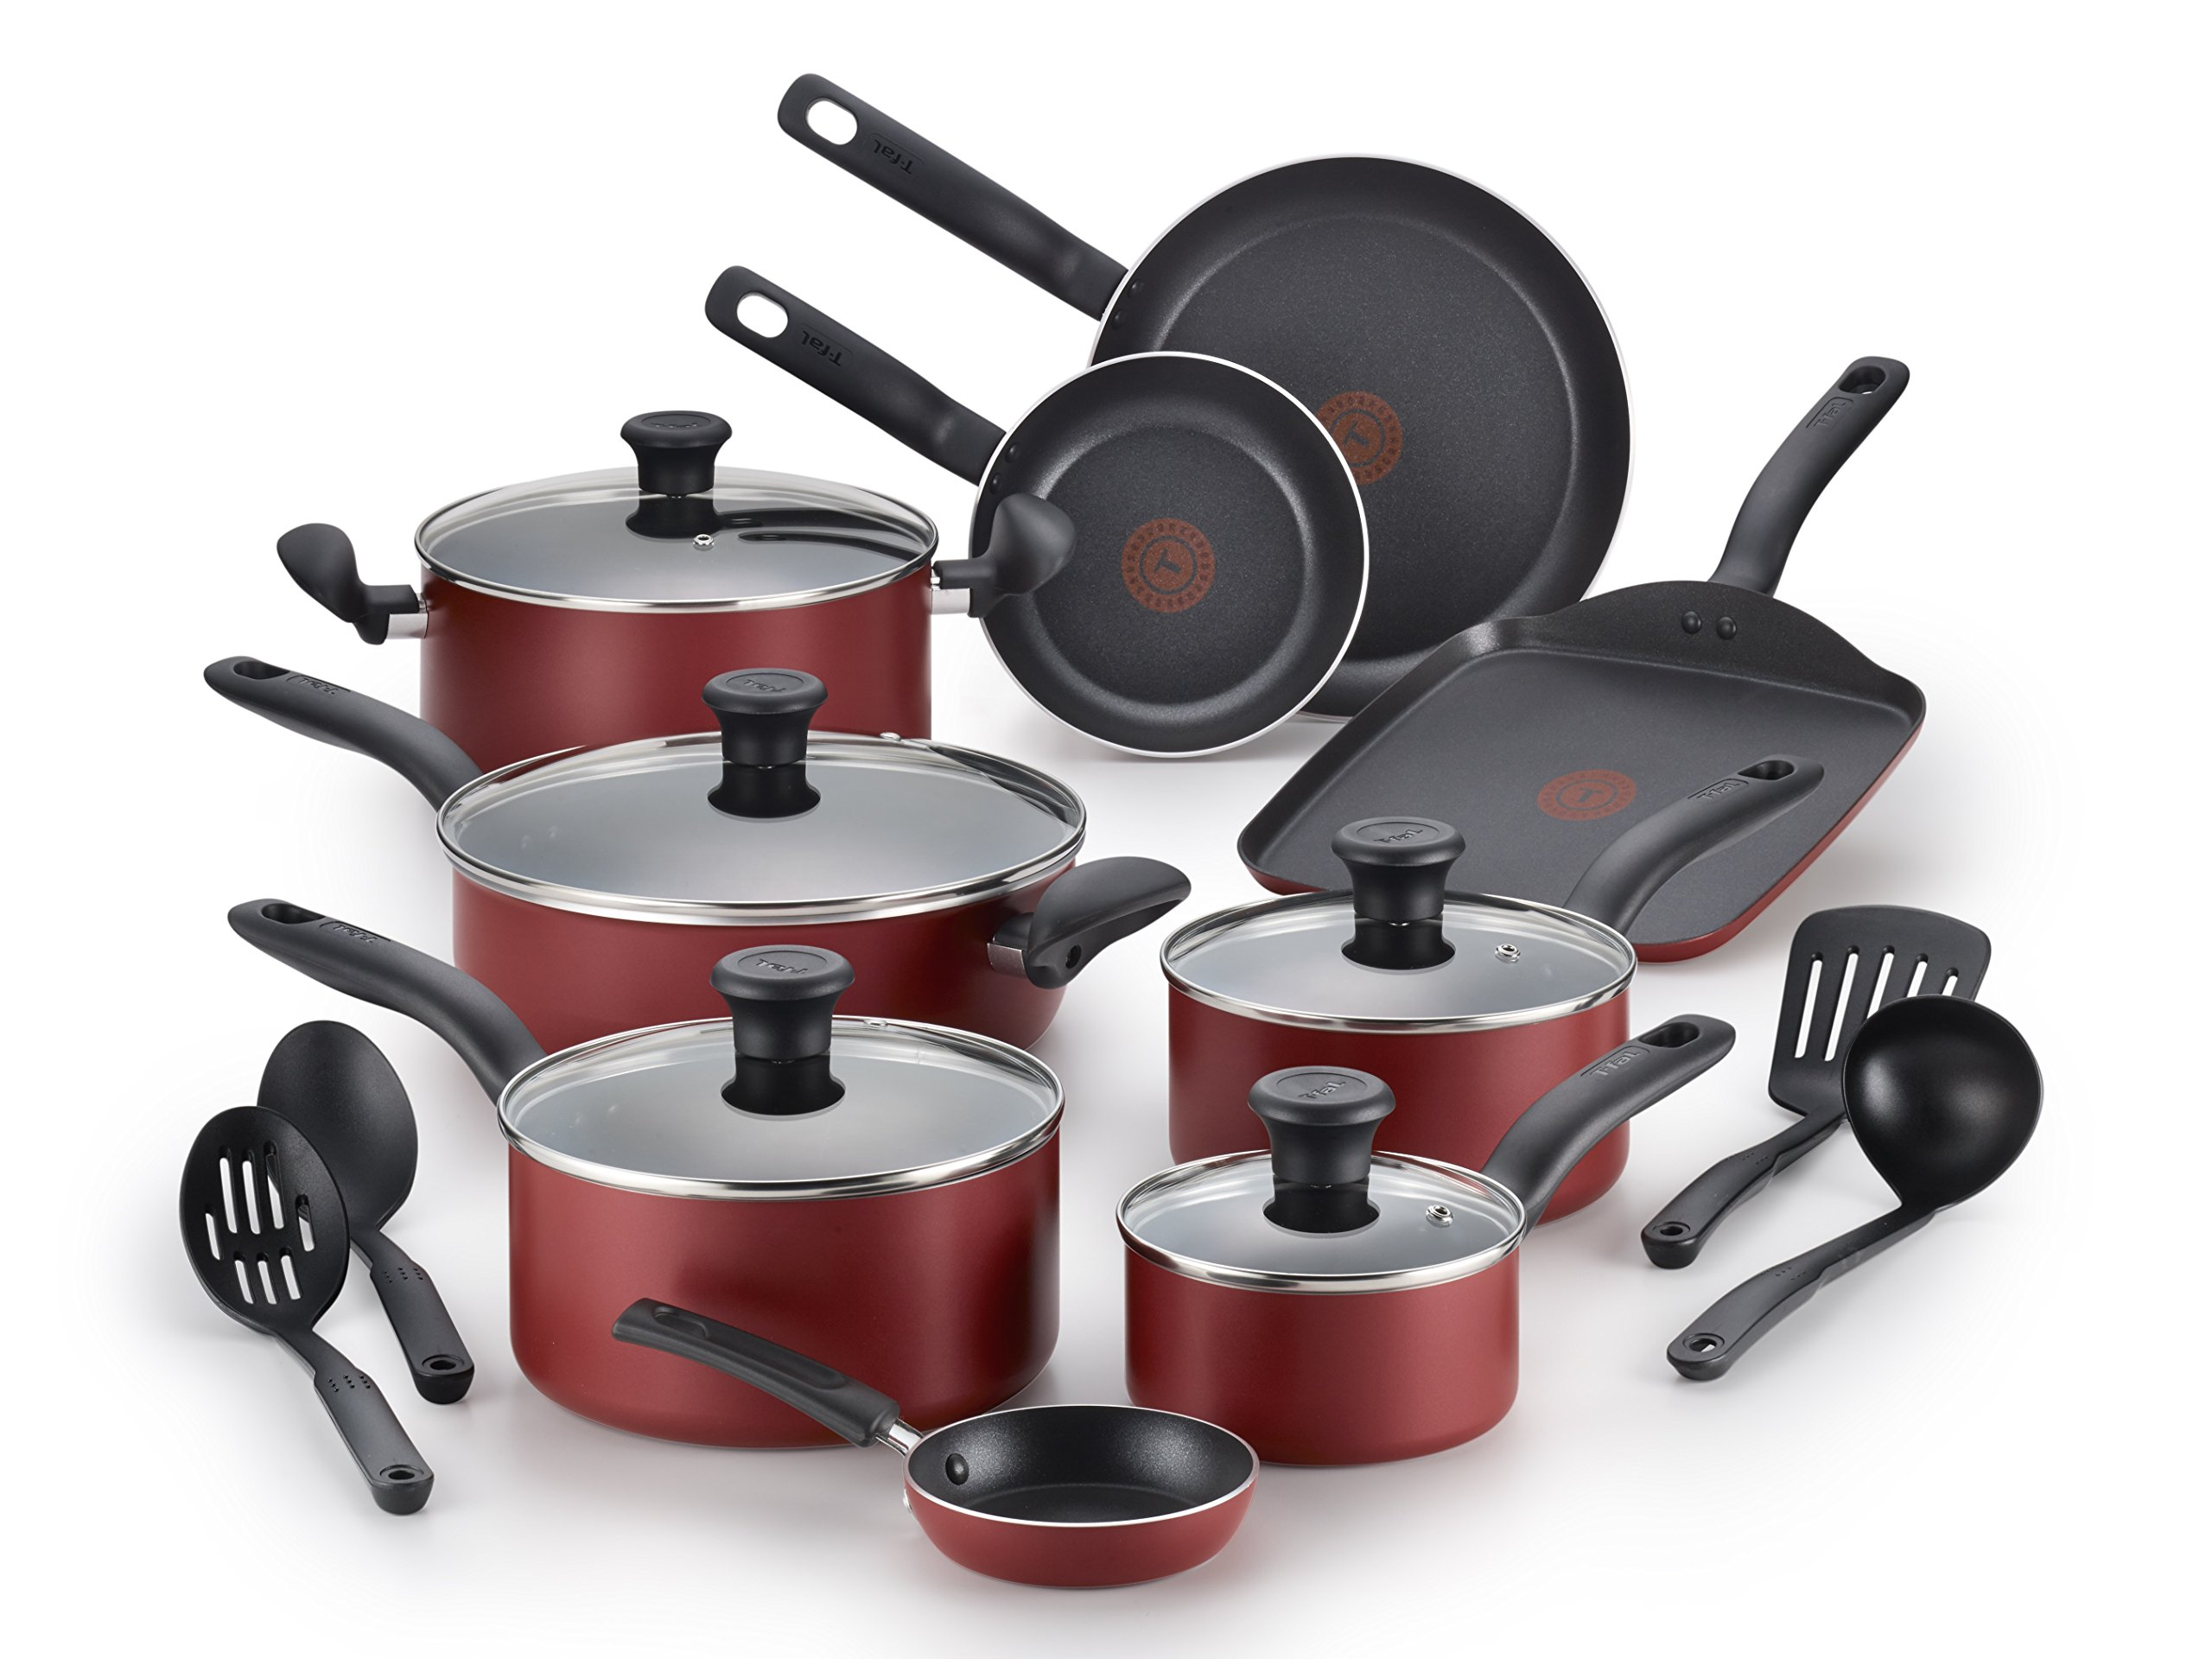 T-fal B165SI Initiatives Nonstick Inside and Out Dishwasher Safe 18-Piece Cookware Set, Red by T-fal